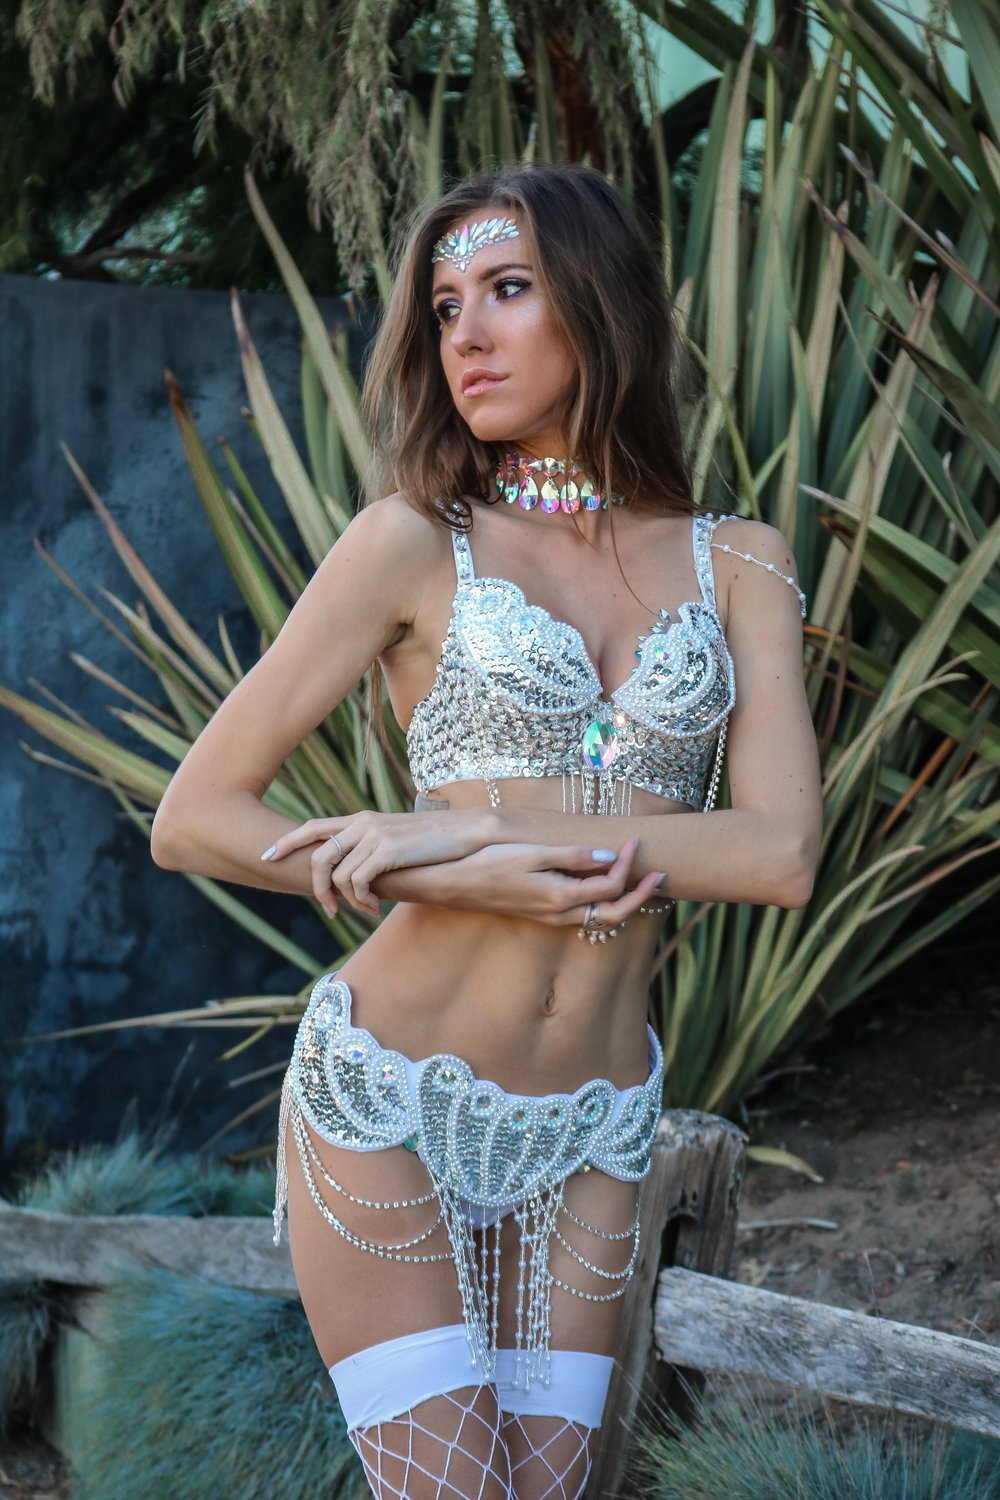 The+Hungarian+Brunette+Sparkle+overload%2C+carnival+inspired+silver+festival+outfit.jpg